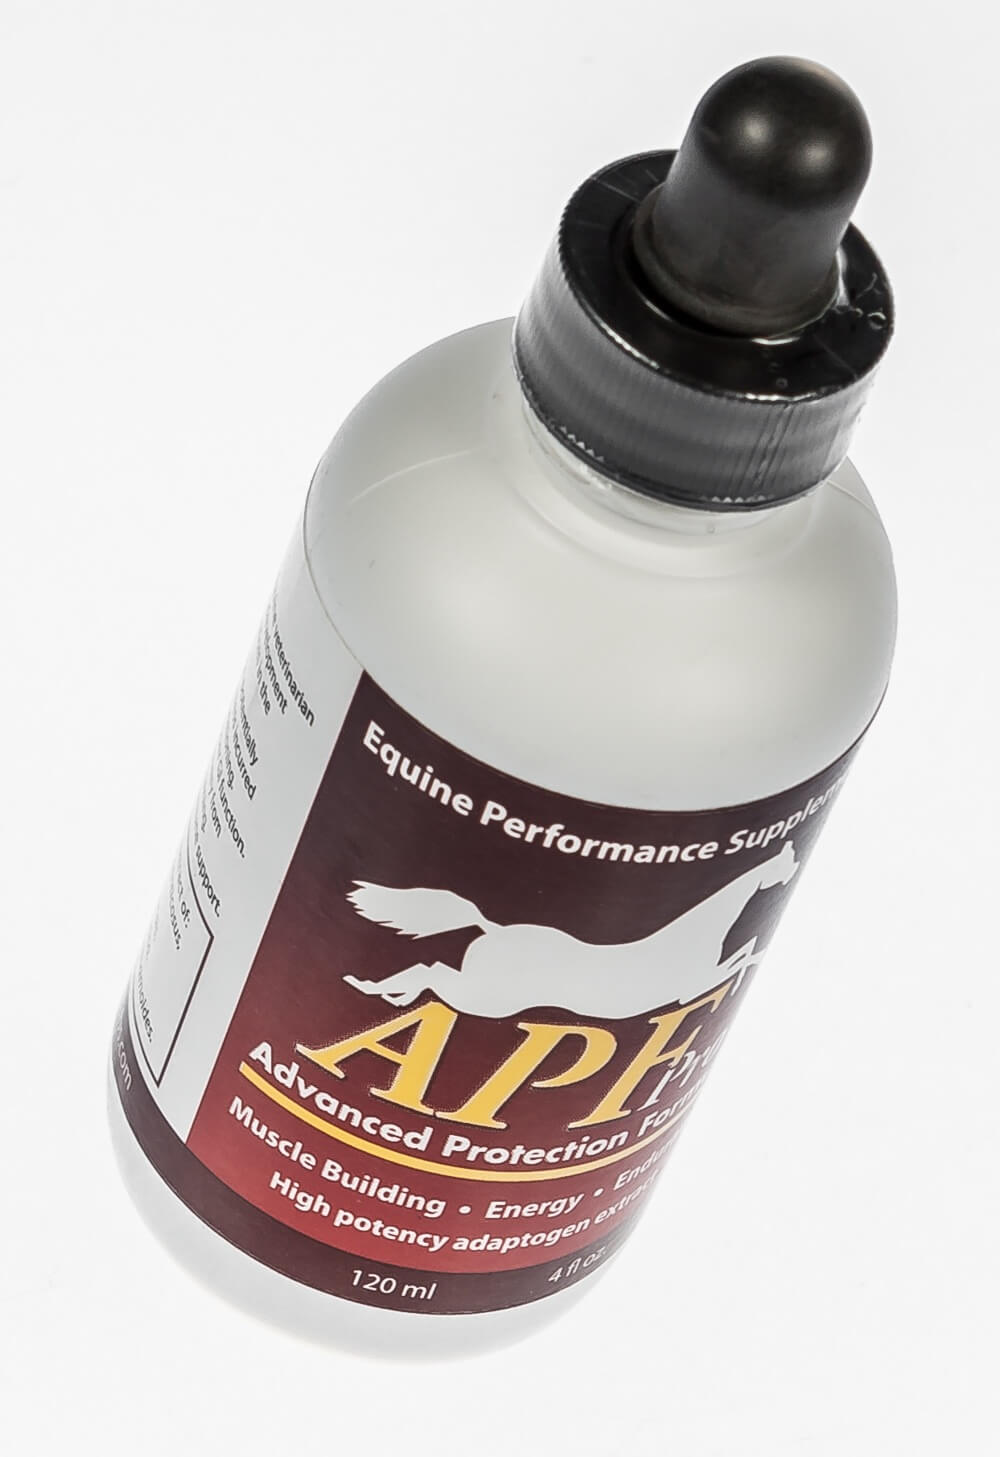 120 Ml Bottle Auburn Laboratories Apf Pro Equine Livestock Supplies